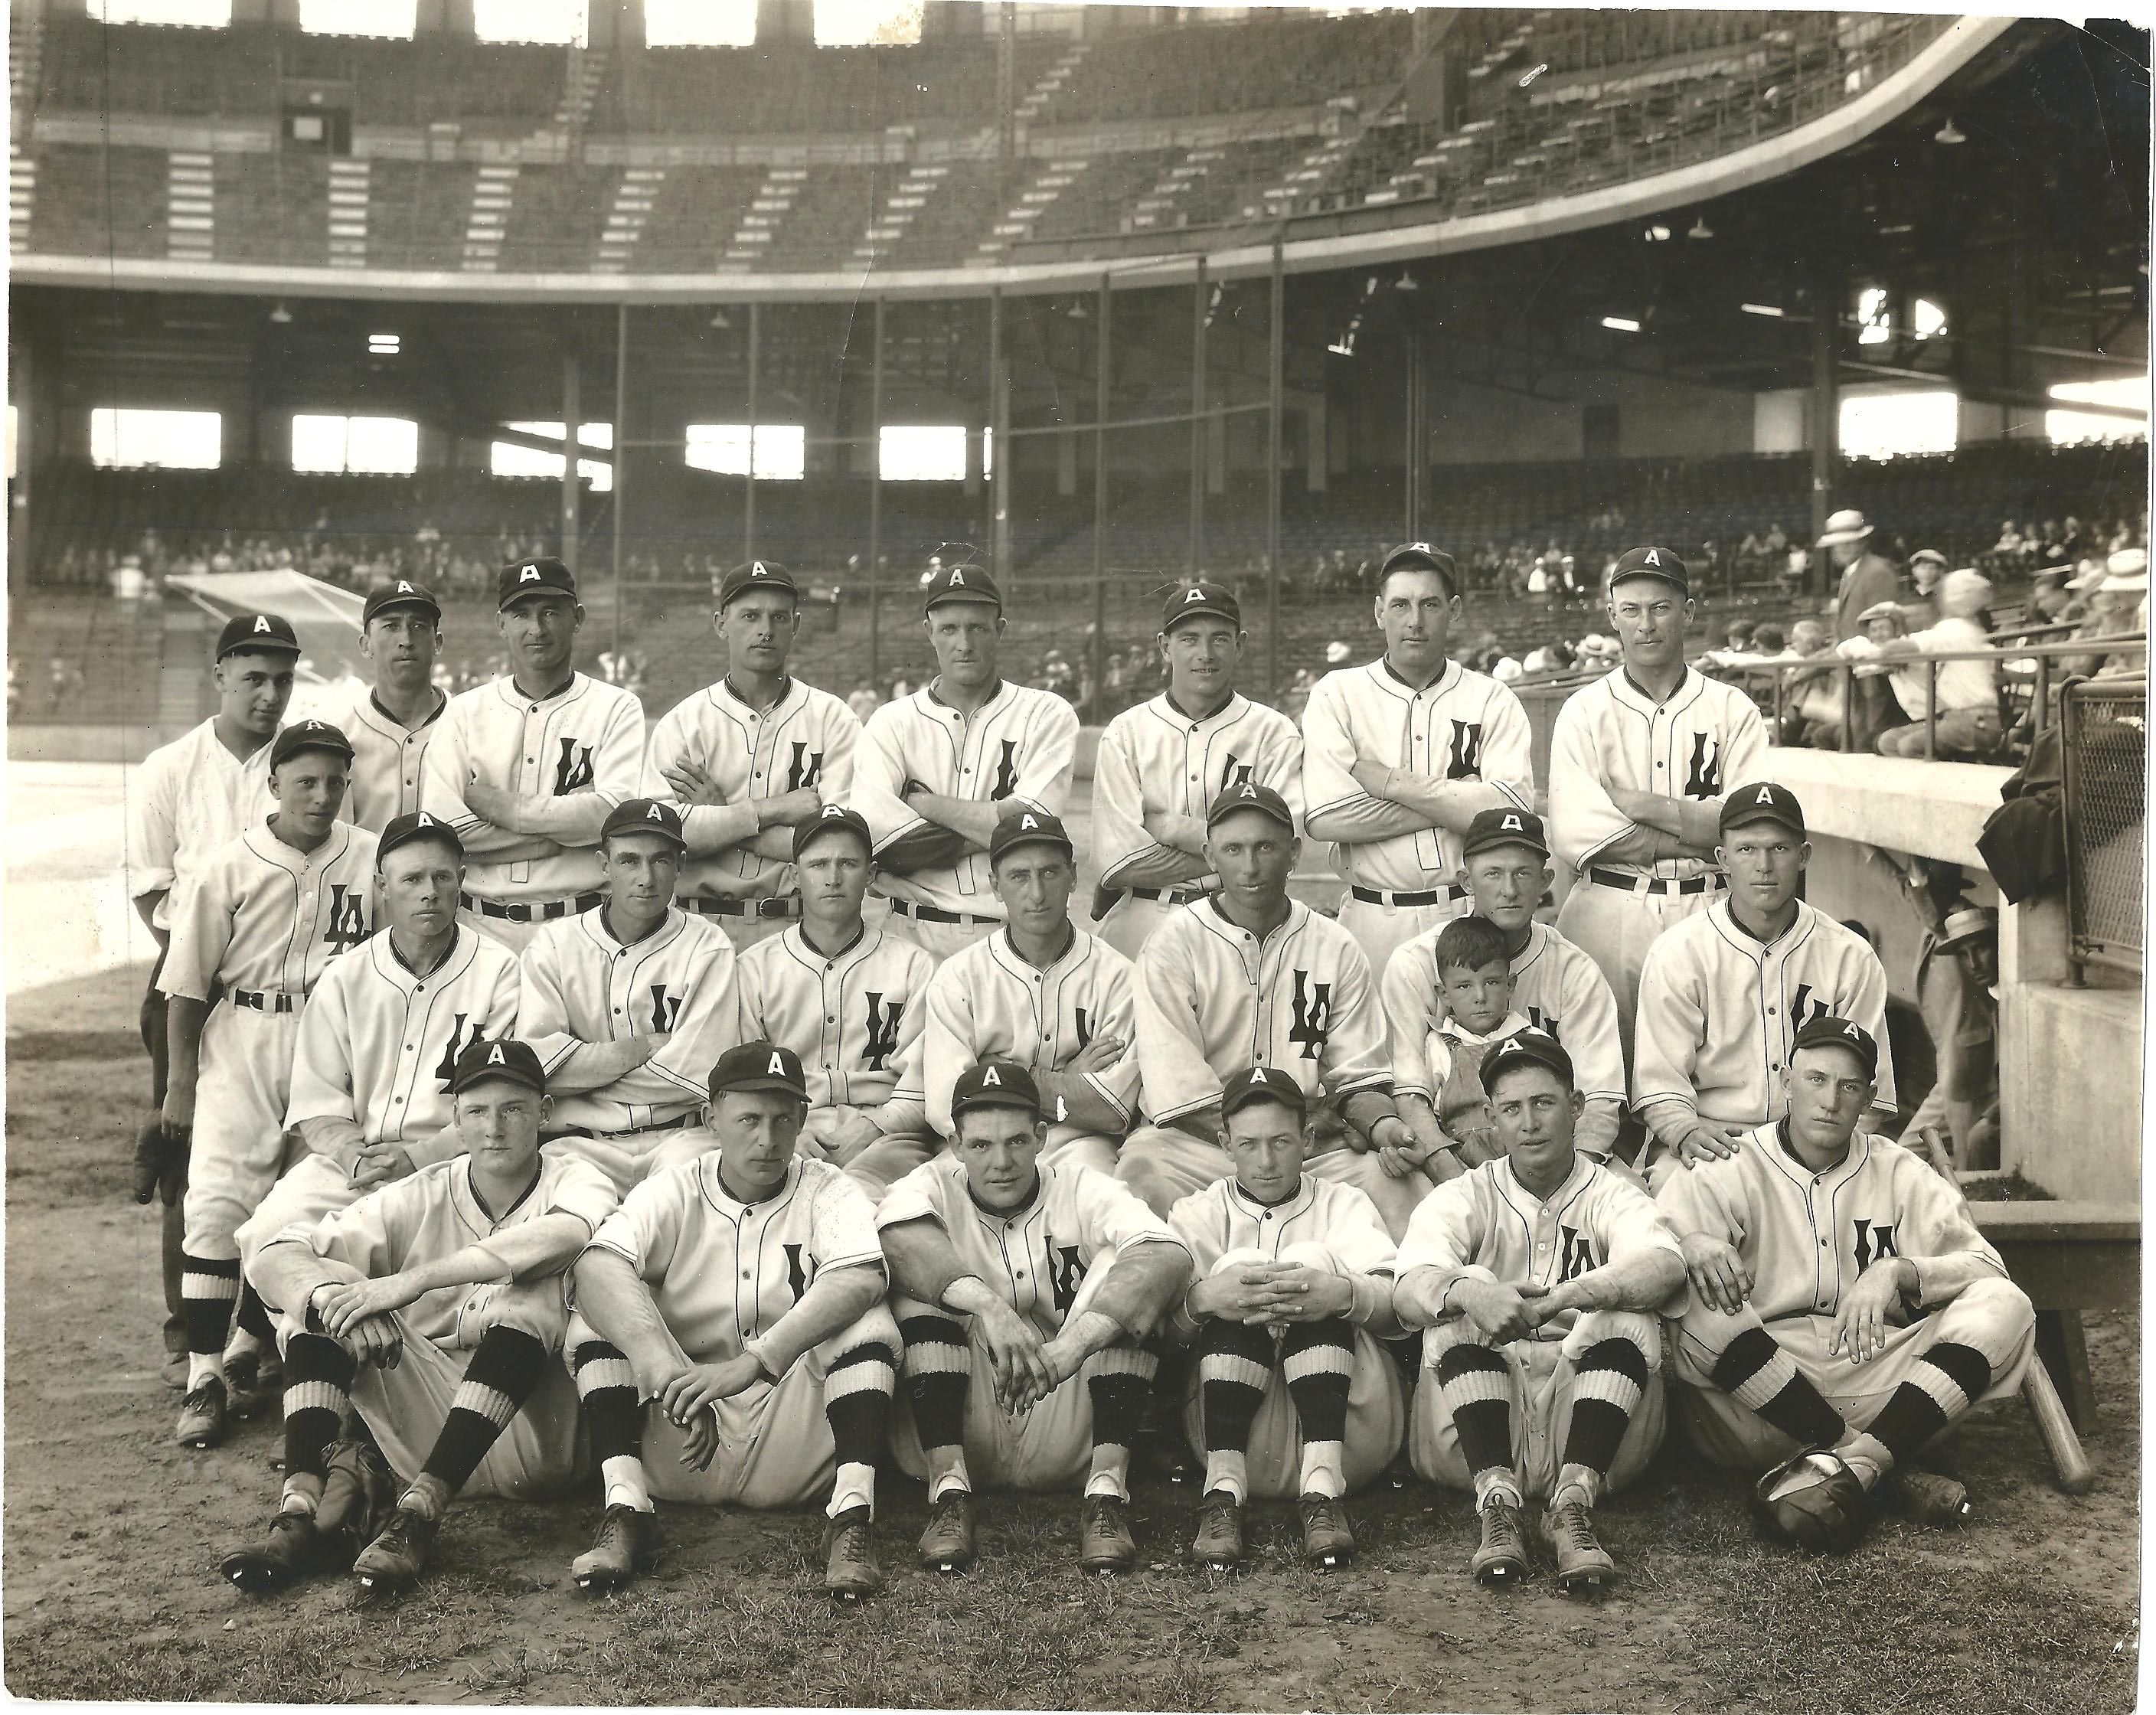 1926 Los Angeles Angels The Old Pacific Coast League Team No Relation To The Major Leagu Anaheim Angels Baseball Angels Baseball Los Angeles Angels Baseball